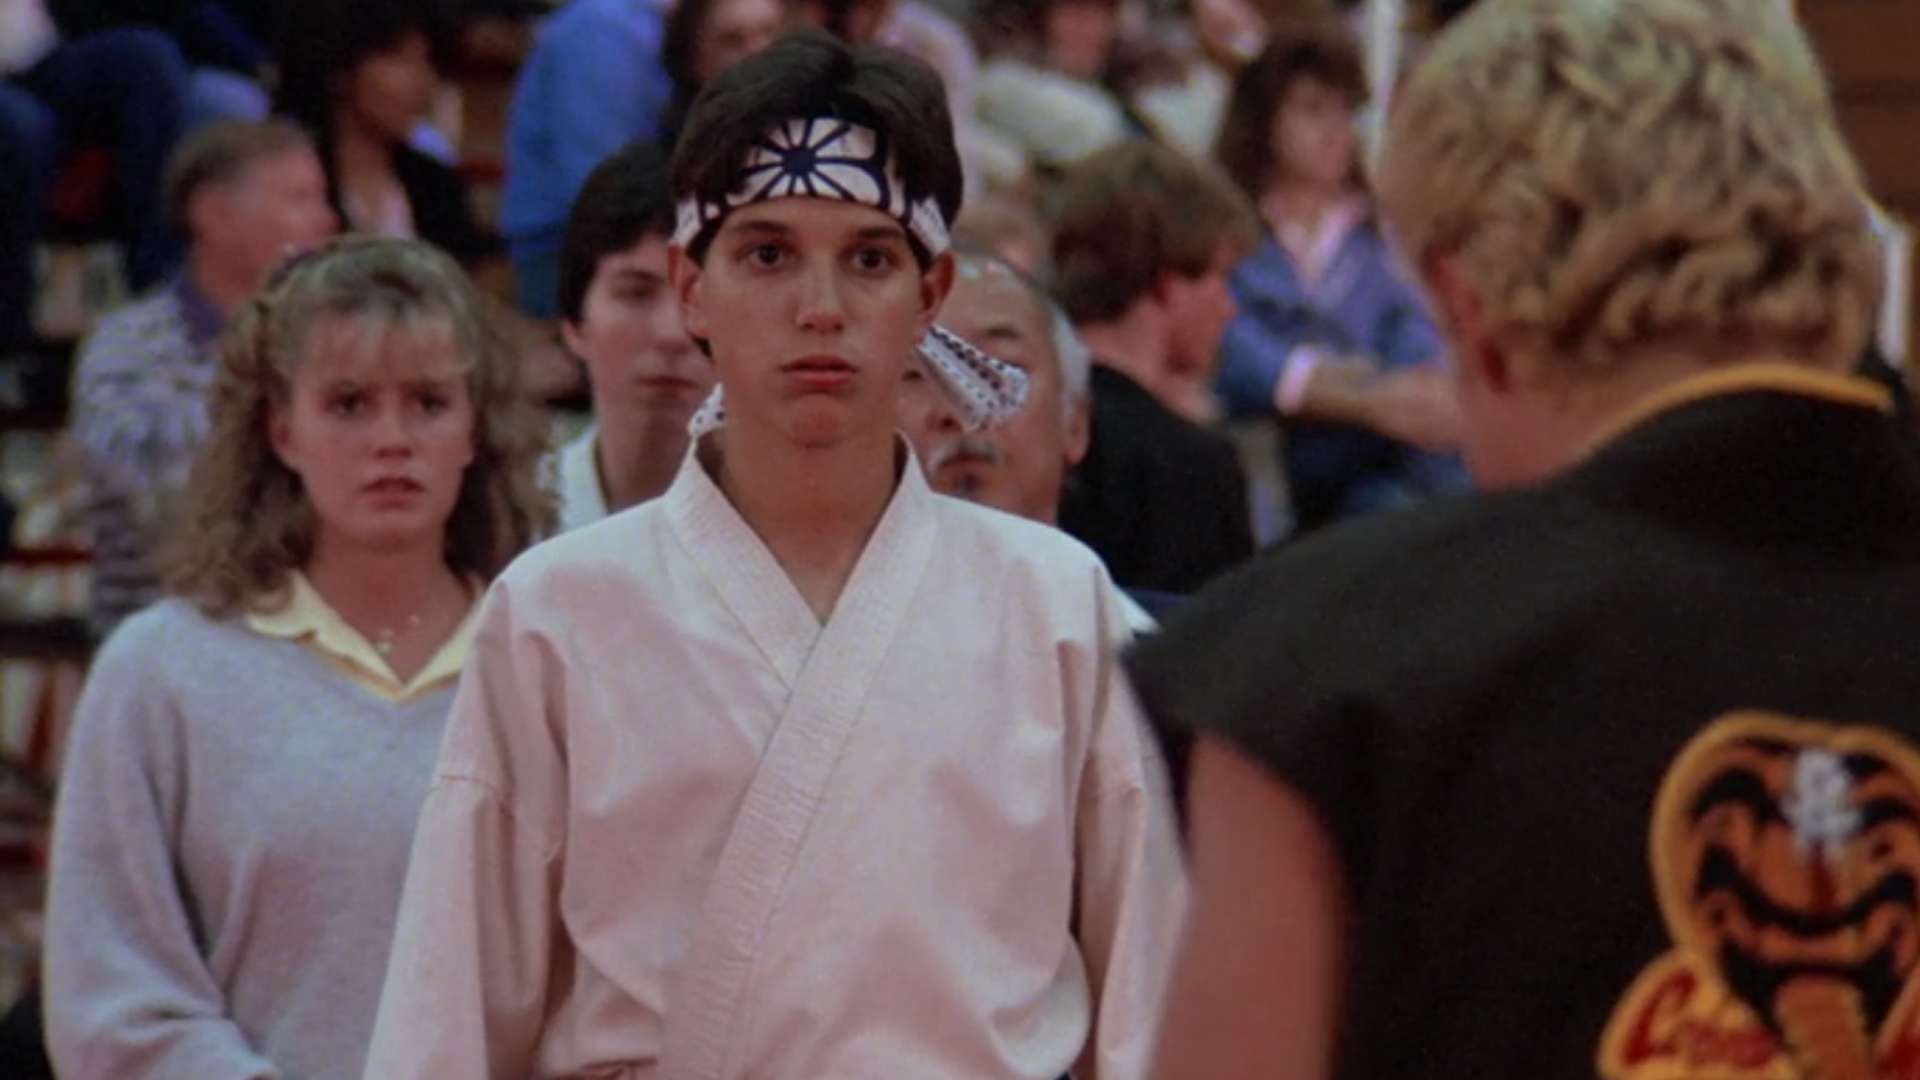 Ive Got An Incredibly Amusing Video For You To Watch Inspired By Classic Film The Karate Kid This Is A Parody Short That Tells Us True Story Of Daniel